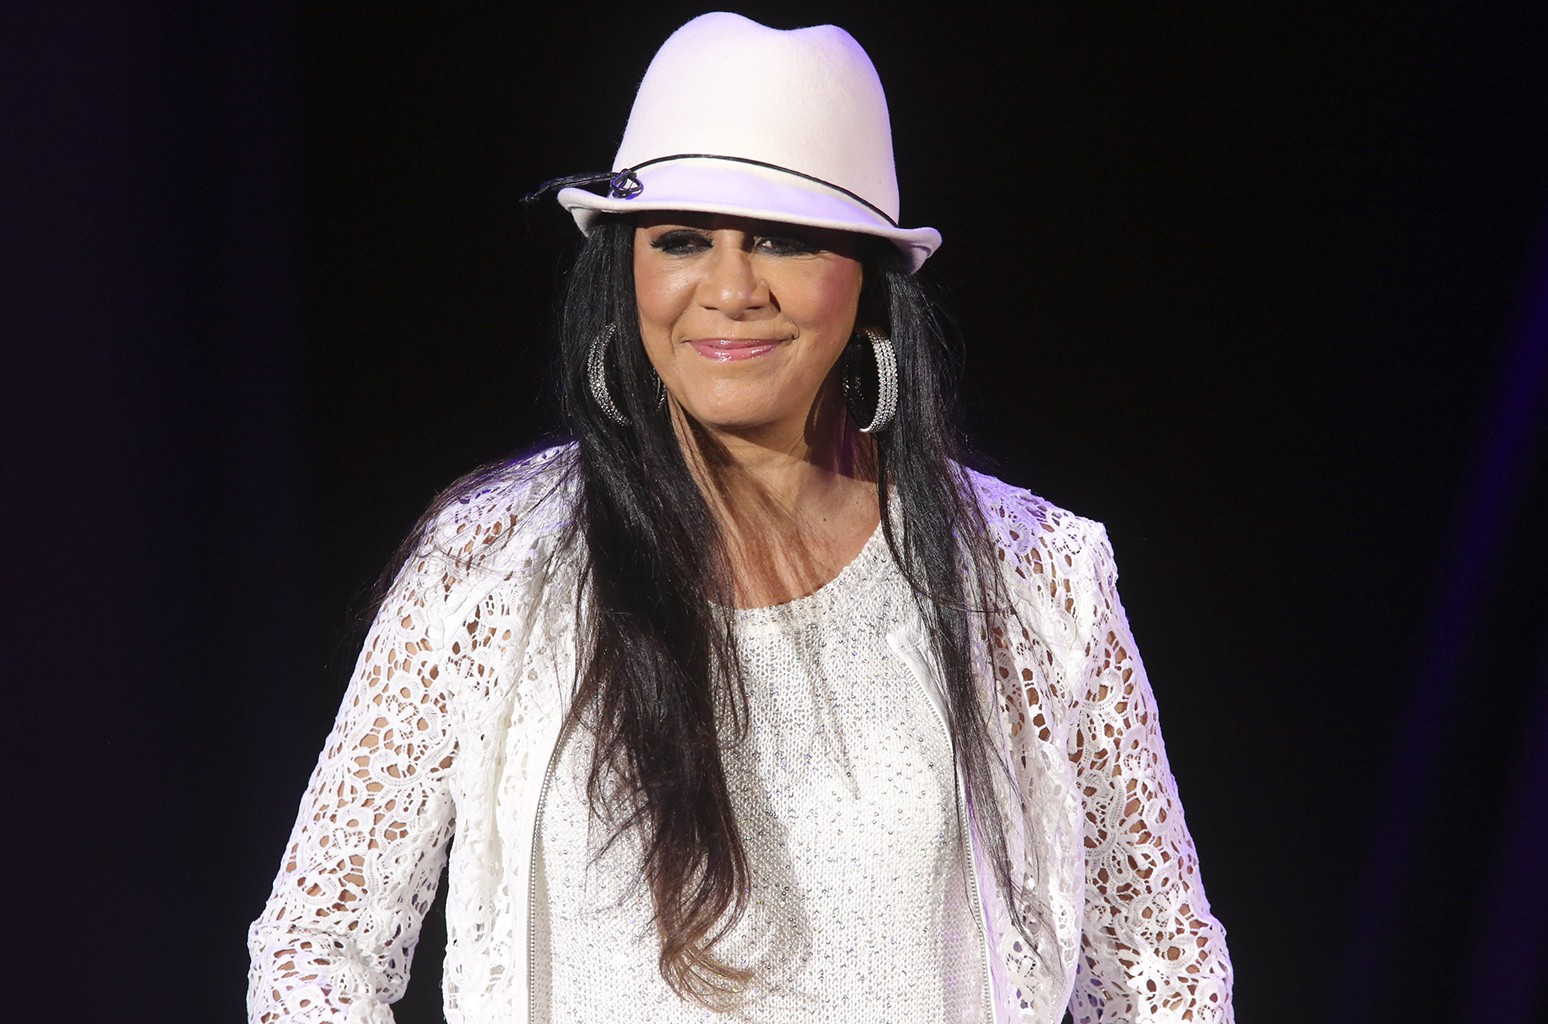 Sheila E. performs on stage at Hollywood Bowl